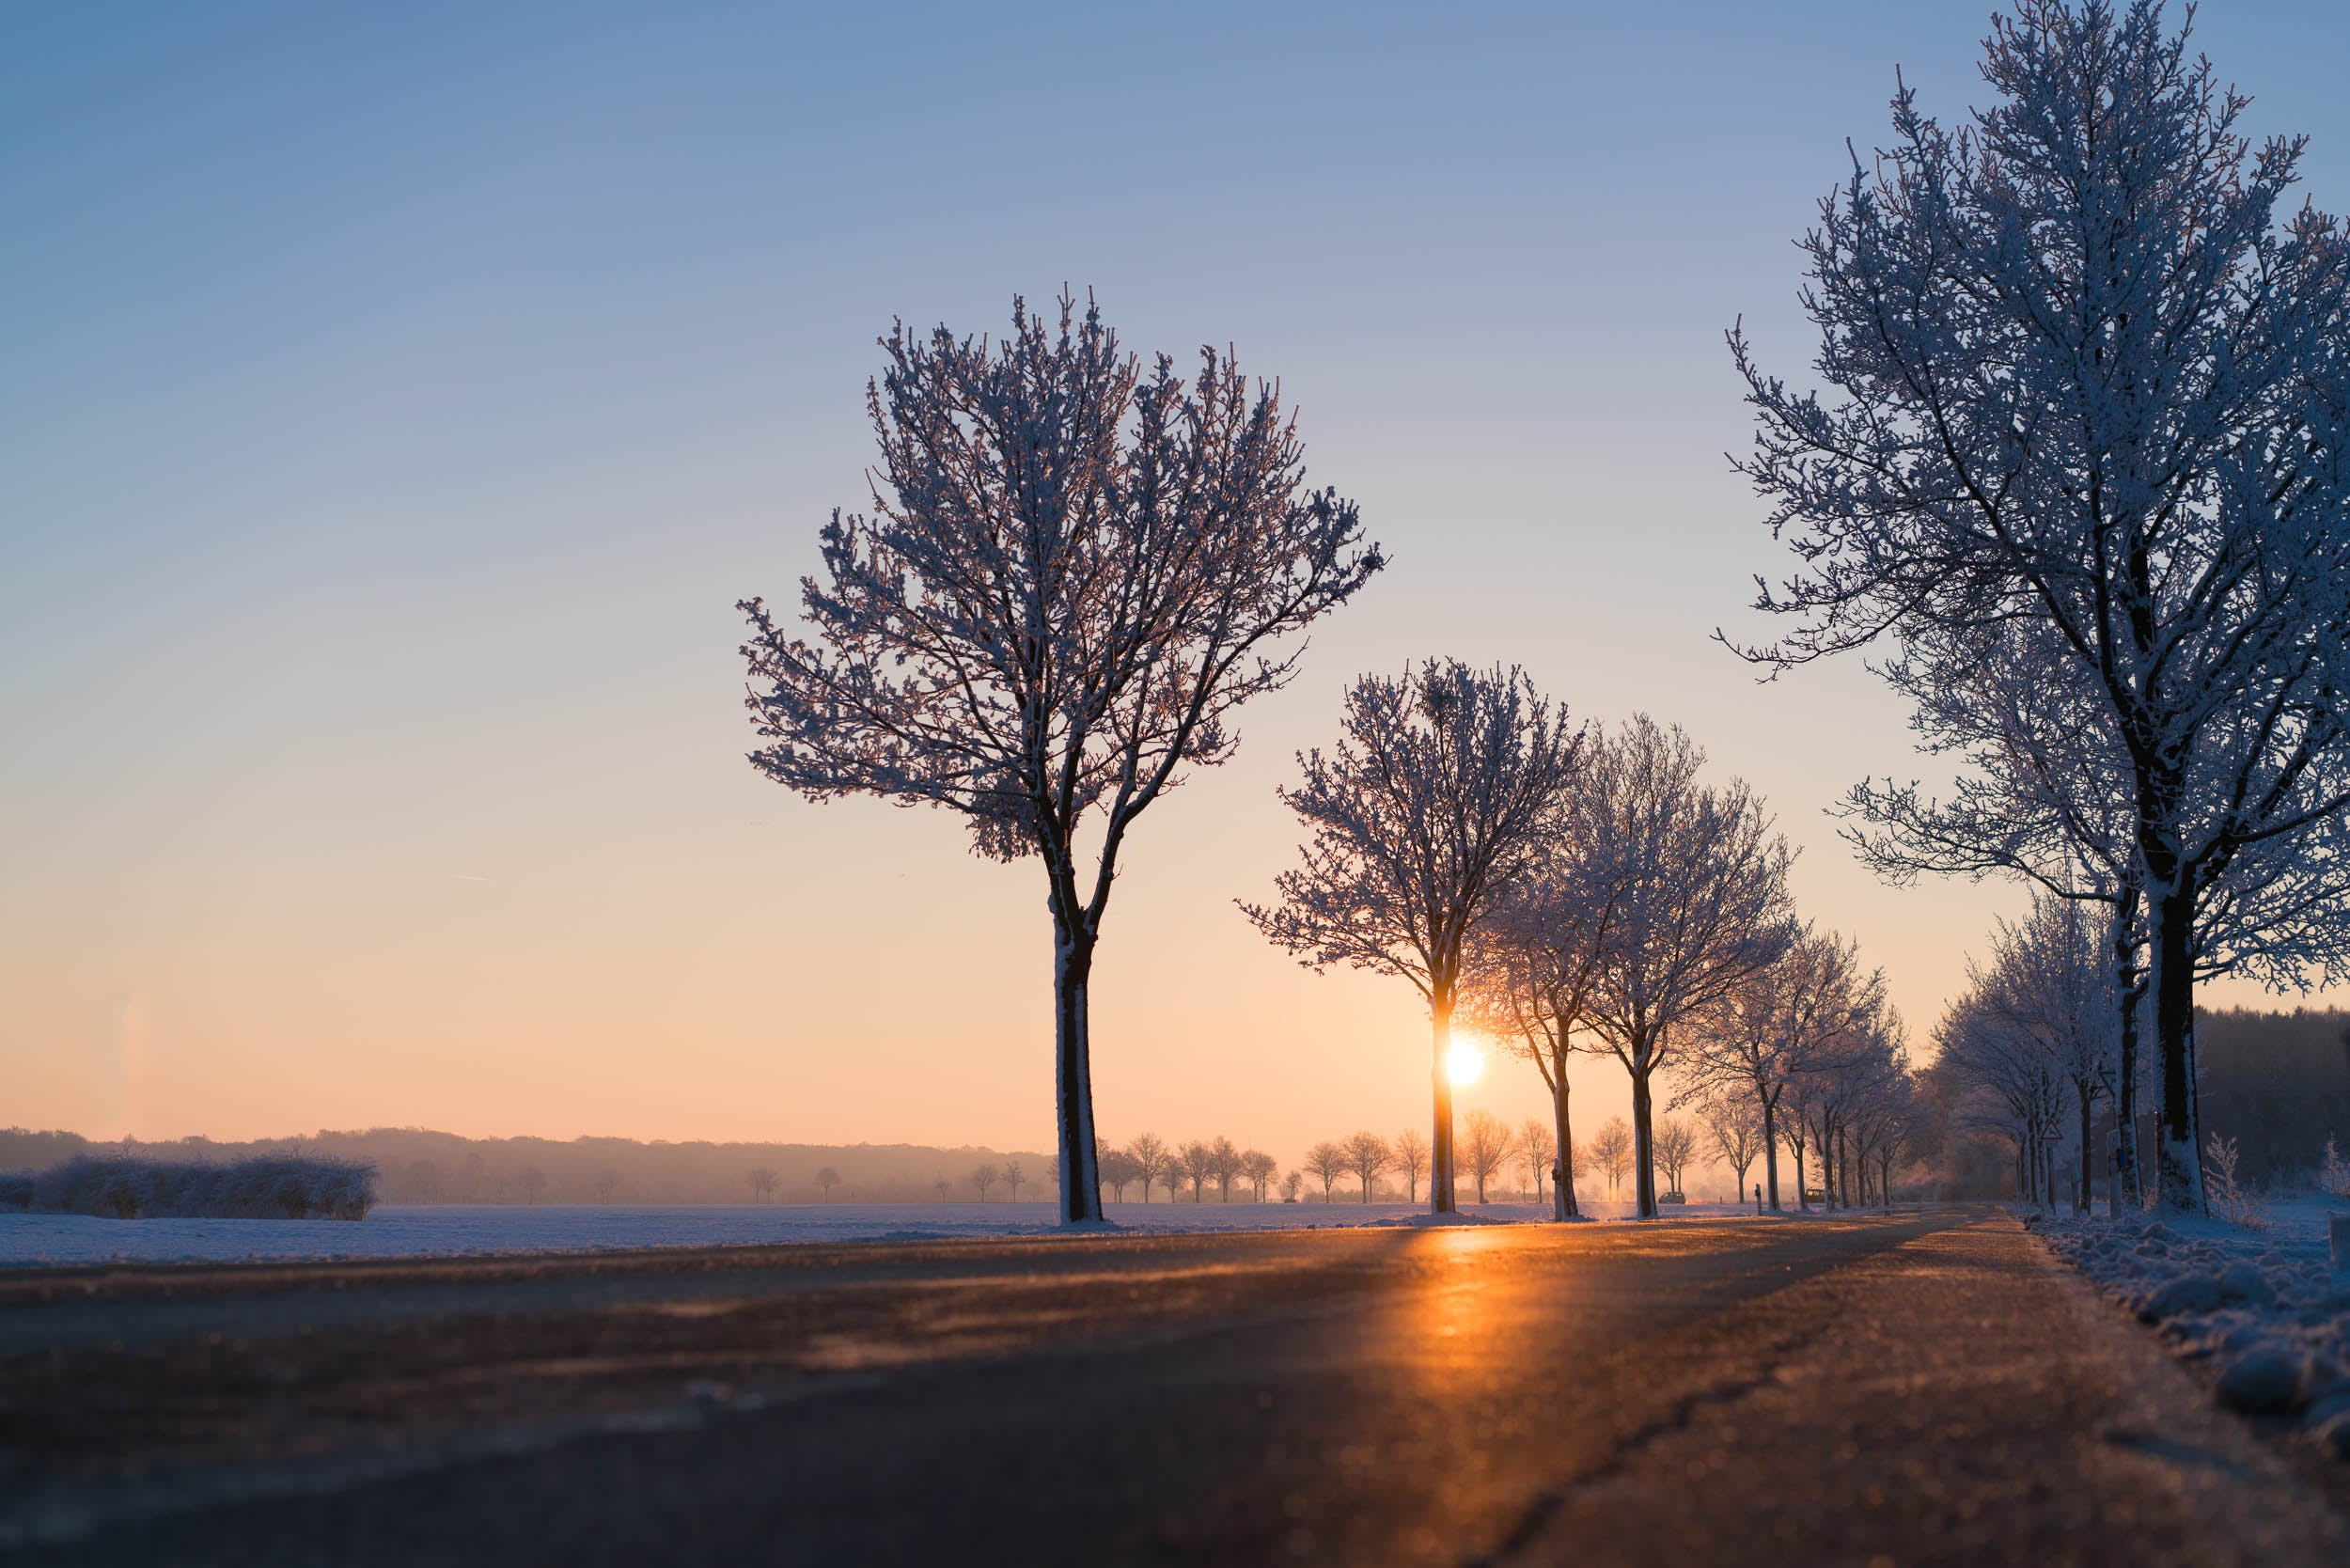 Low Angle View Photo of Concrete Road Between Trees Beside Body of Water during Sunrise